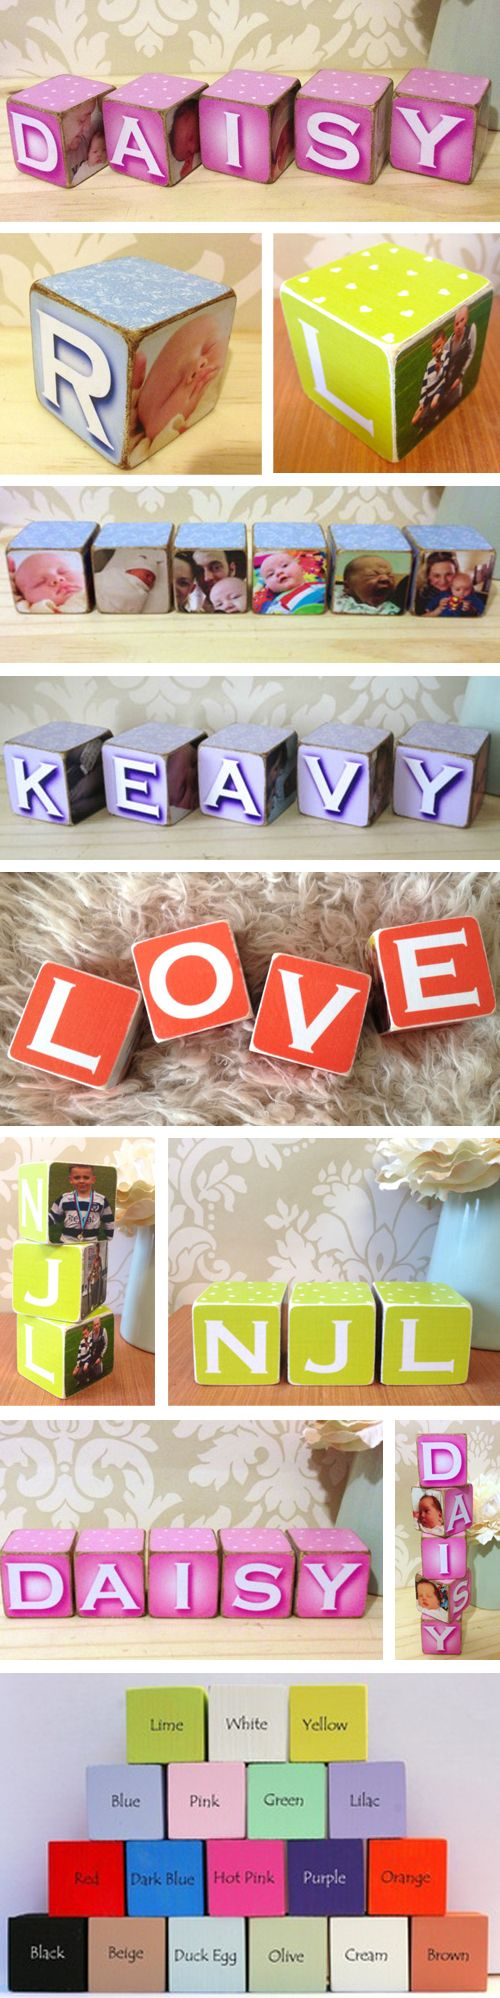 Personalised wooden name photo blocks